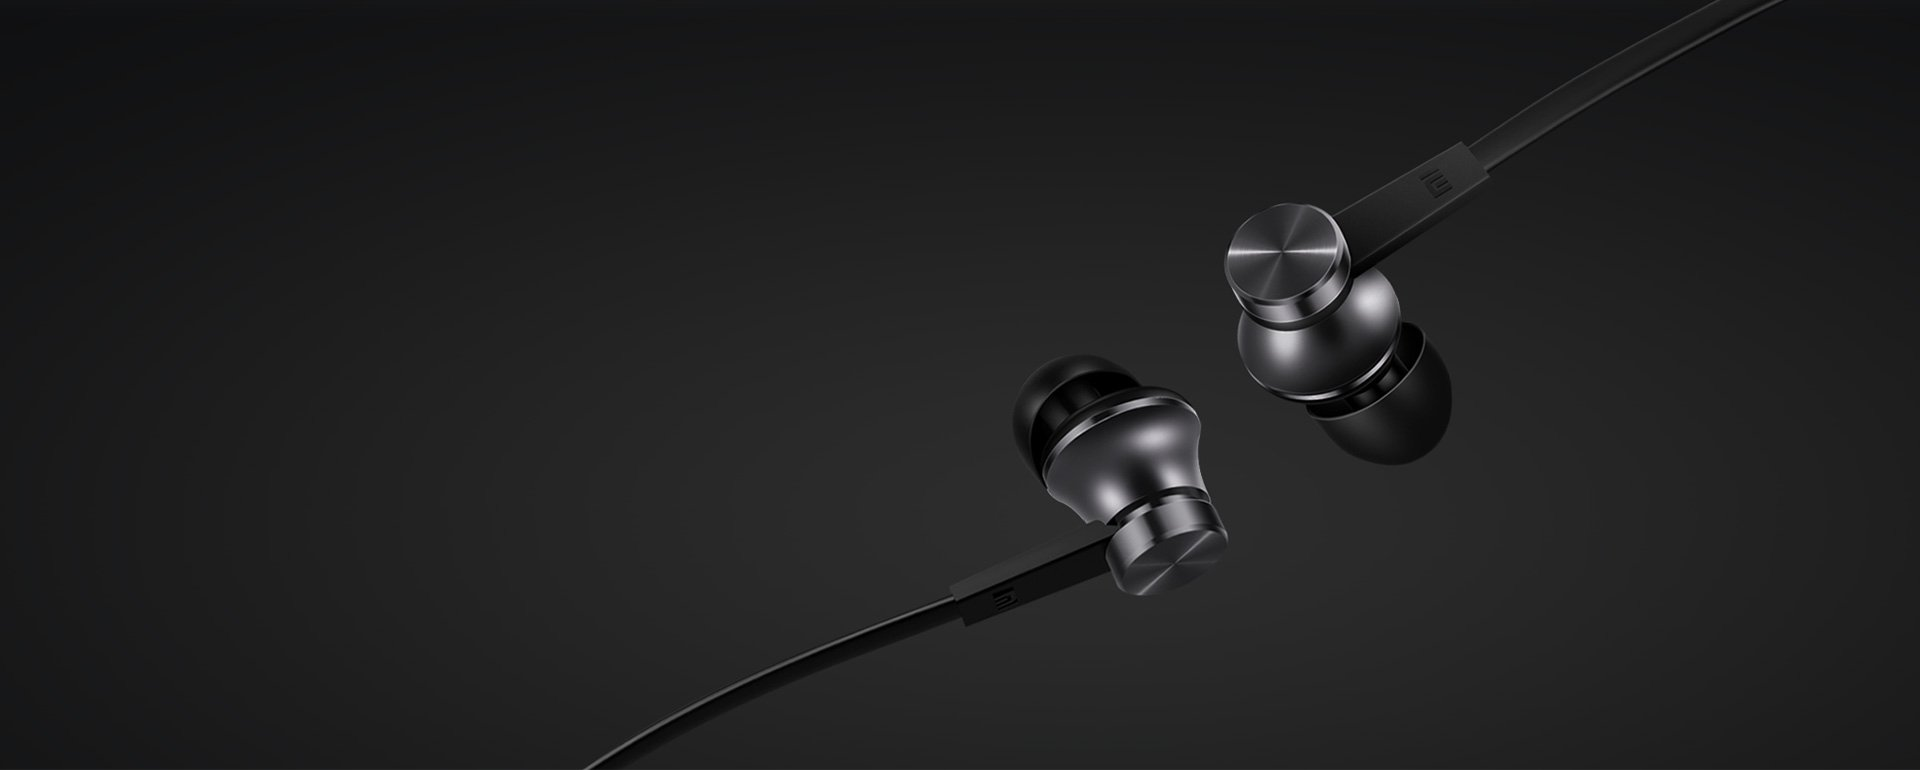 Xiaomi Mi In-Ear Headphones Basic sluchátka 3,5 mm jack piston - levna sluchatka